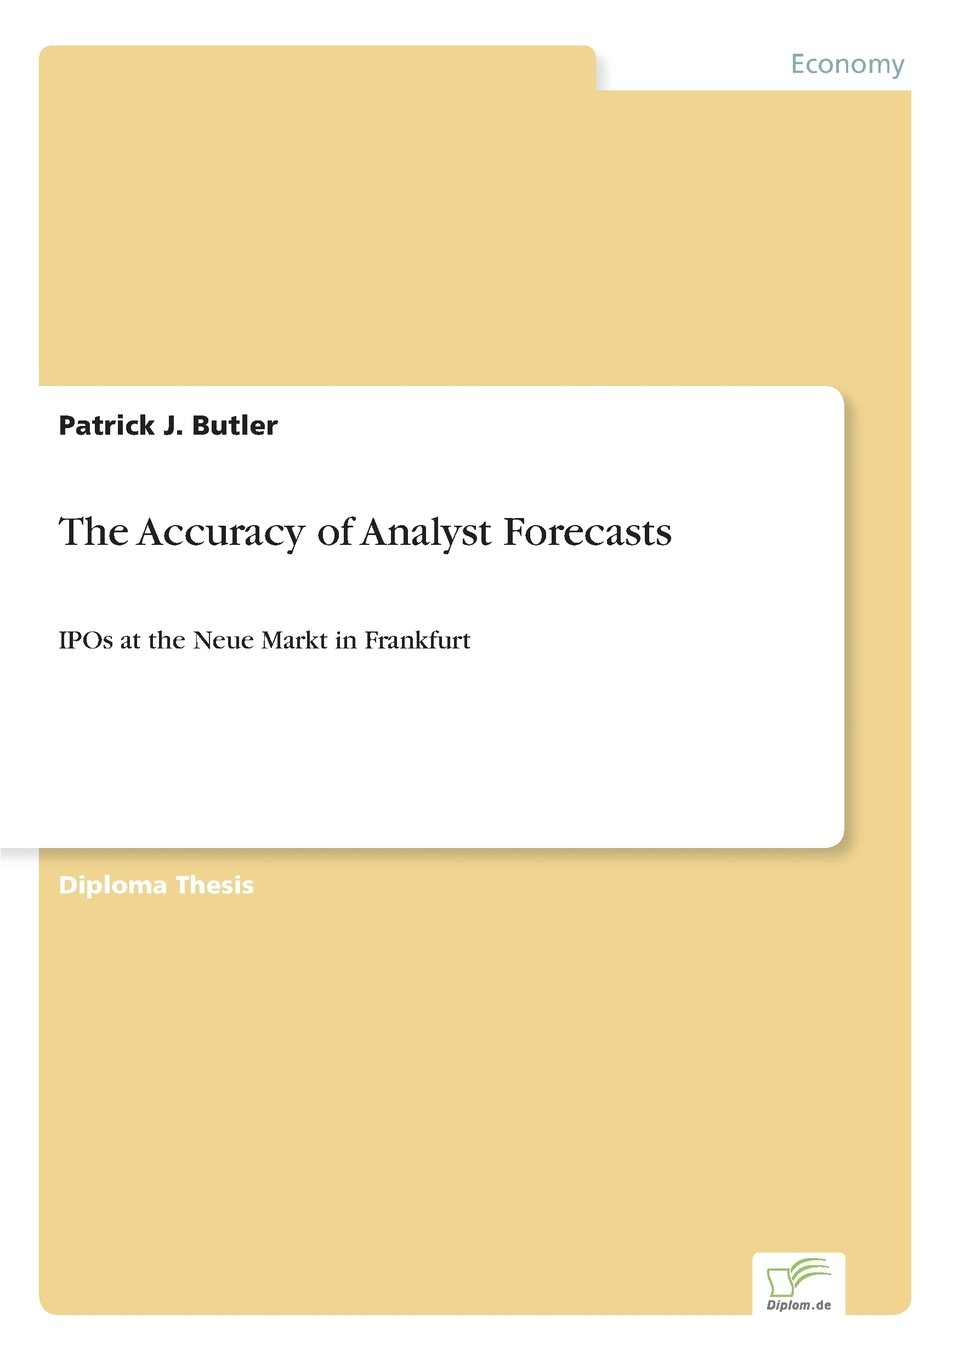 The Accuracy of Analyst Forecasts: IPOs at the Neue Markt in Frankfurt ebook